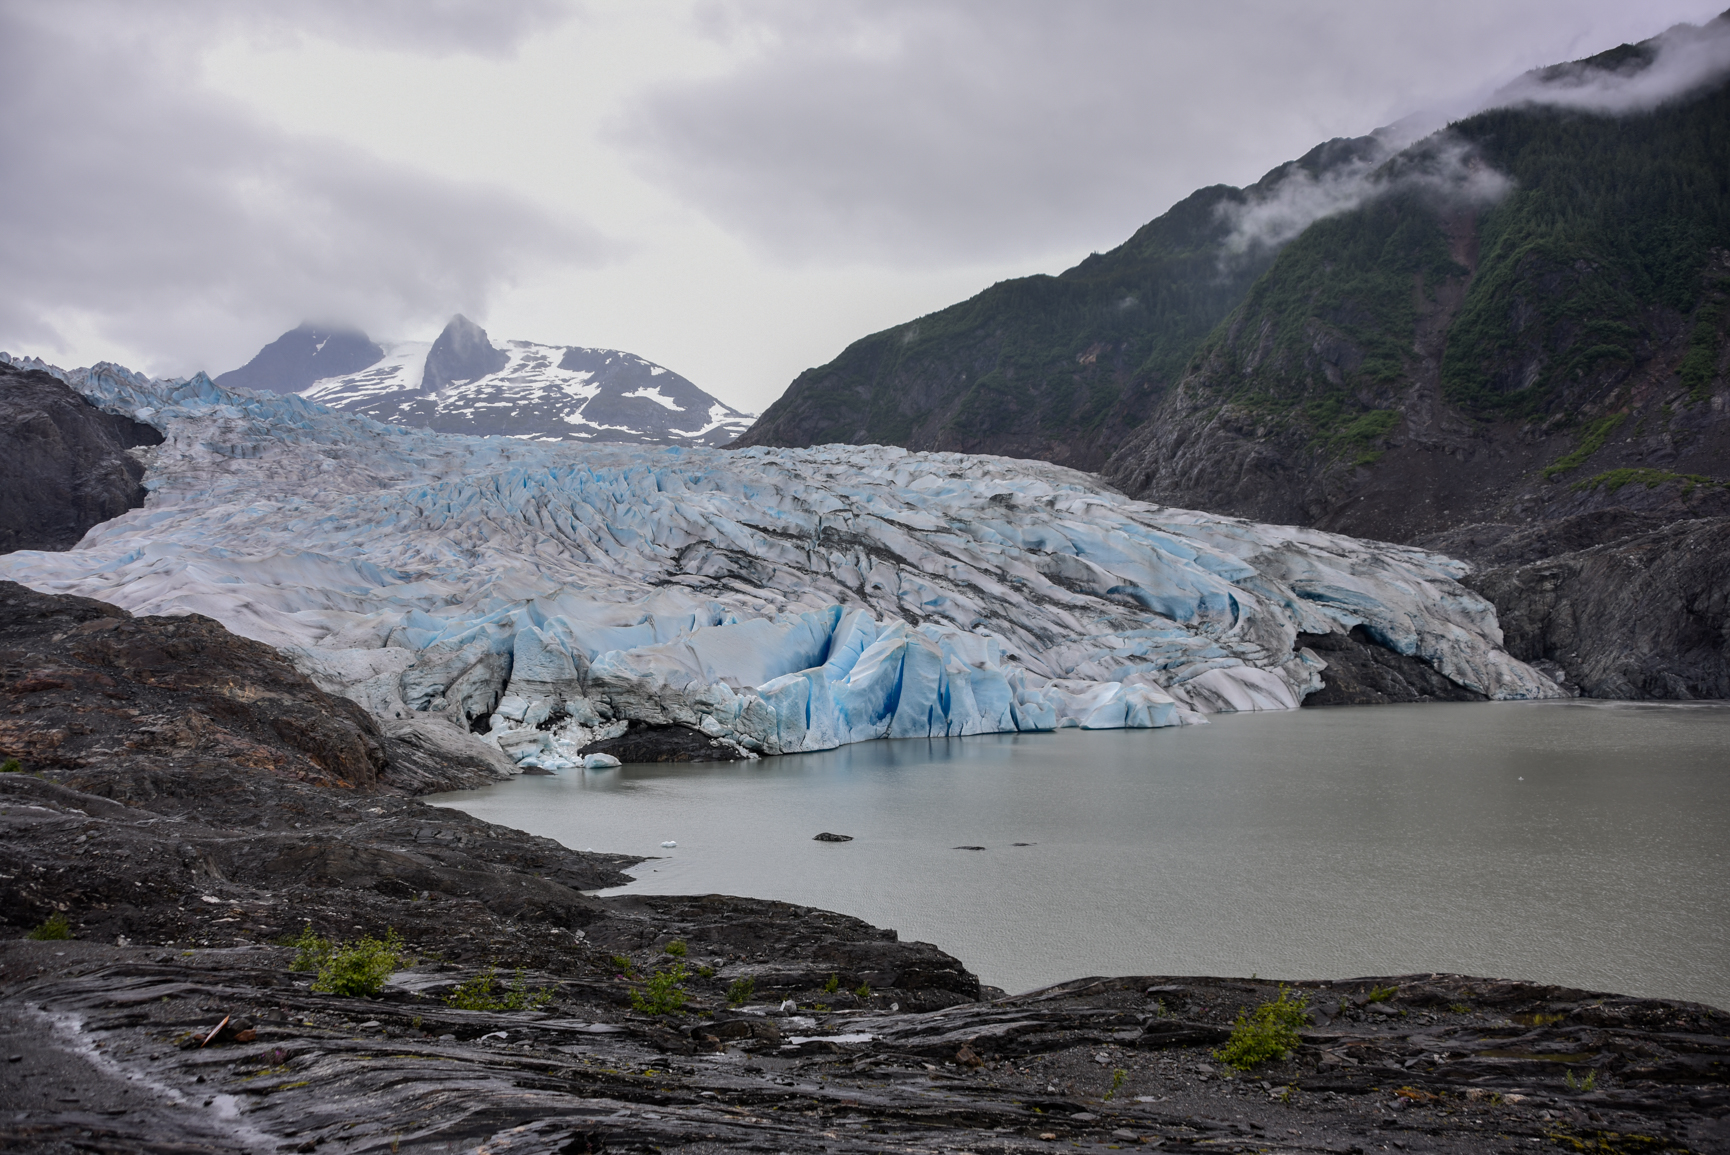 The Mendenhall Glacier in Alaska; not Antarctica. But these days, who knows?